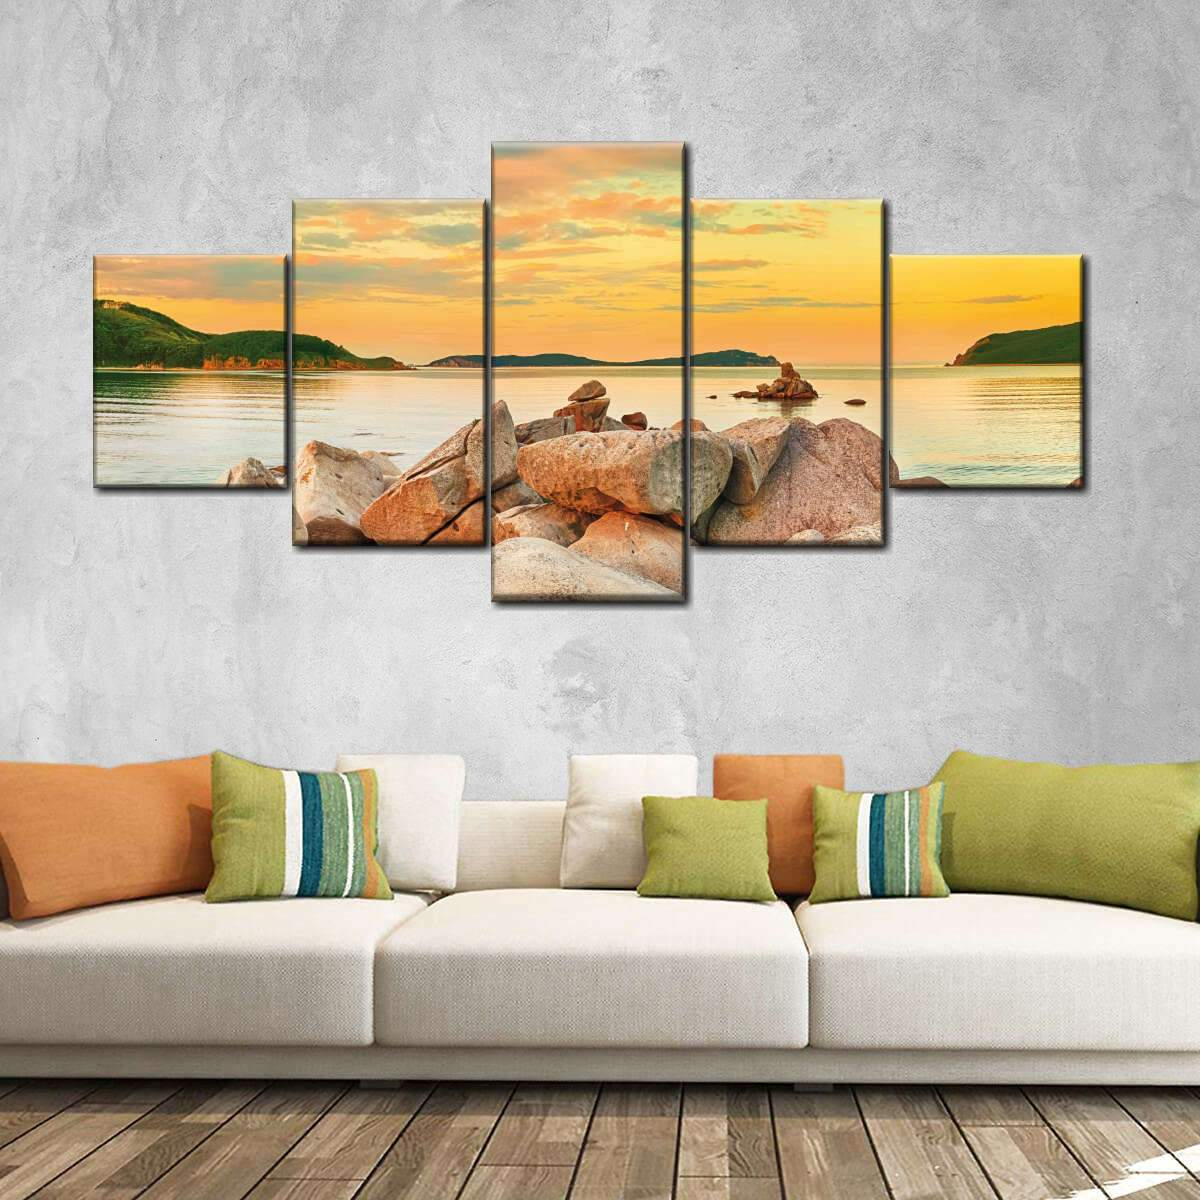 Marvelous Lake Shore Multi Panel Canvas Wall Art